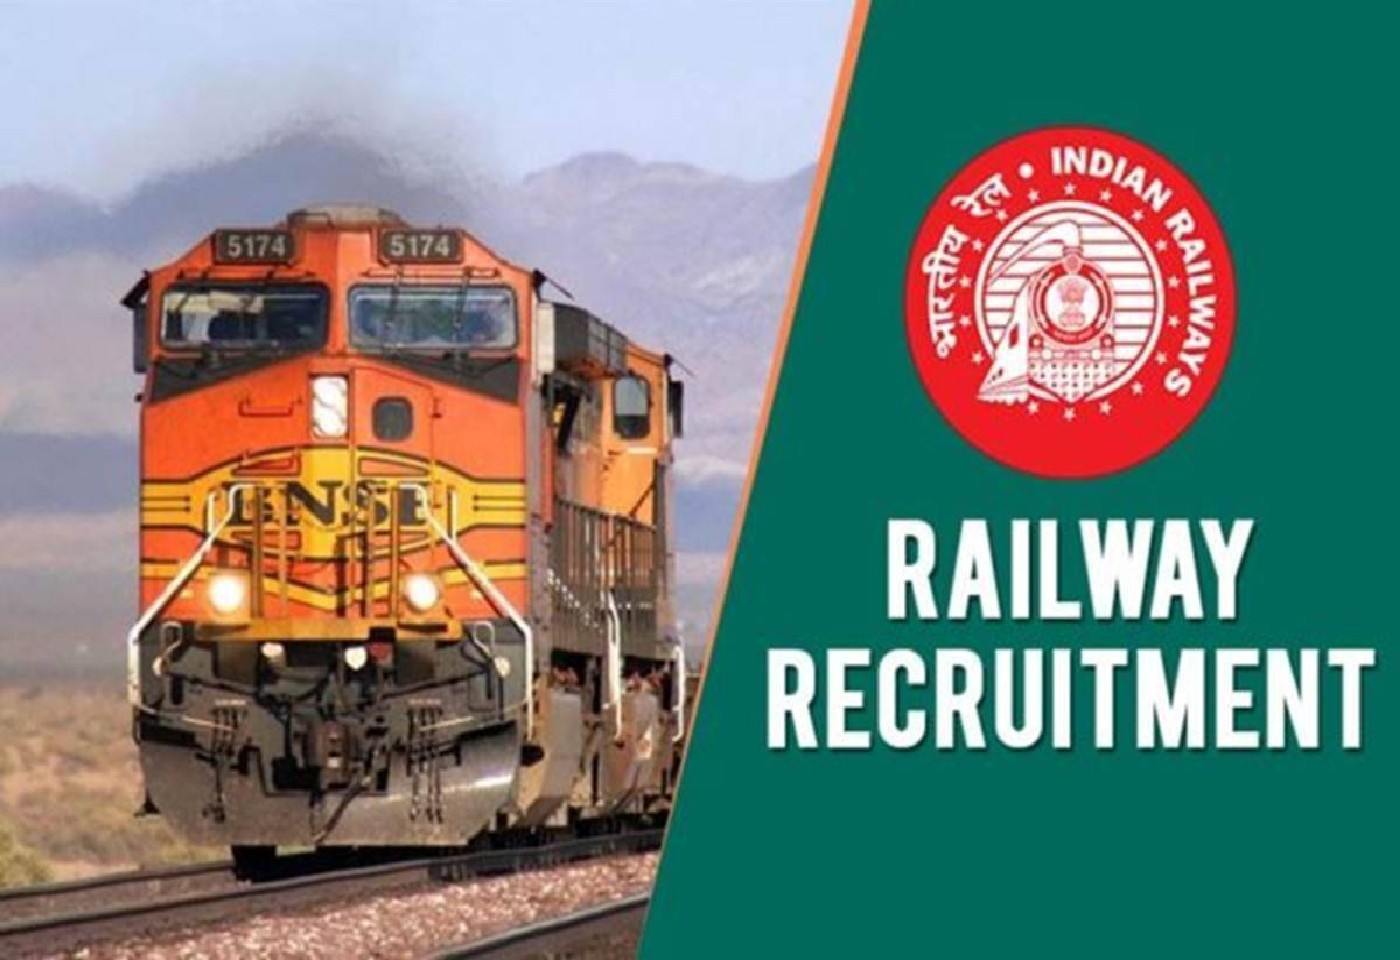 Railway Recruitment 2021 for Paramedical Posts in Railways, Salary up to Rs 75,000, Apply Today